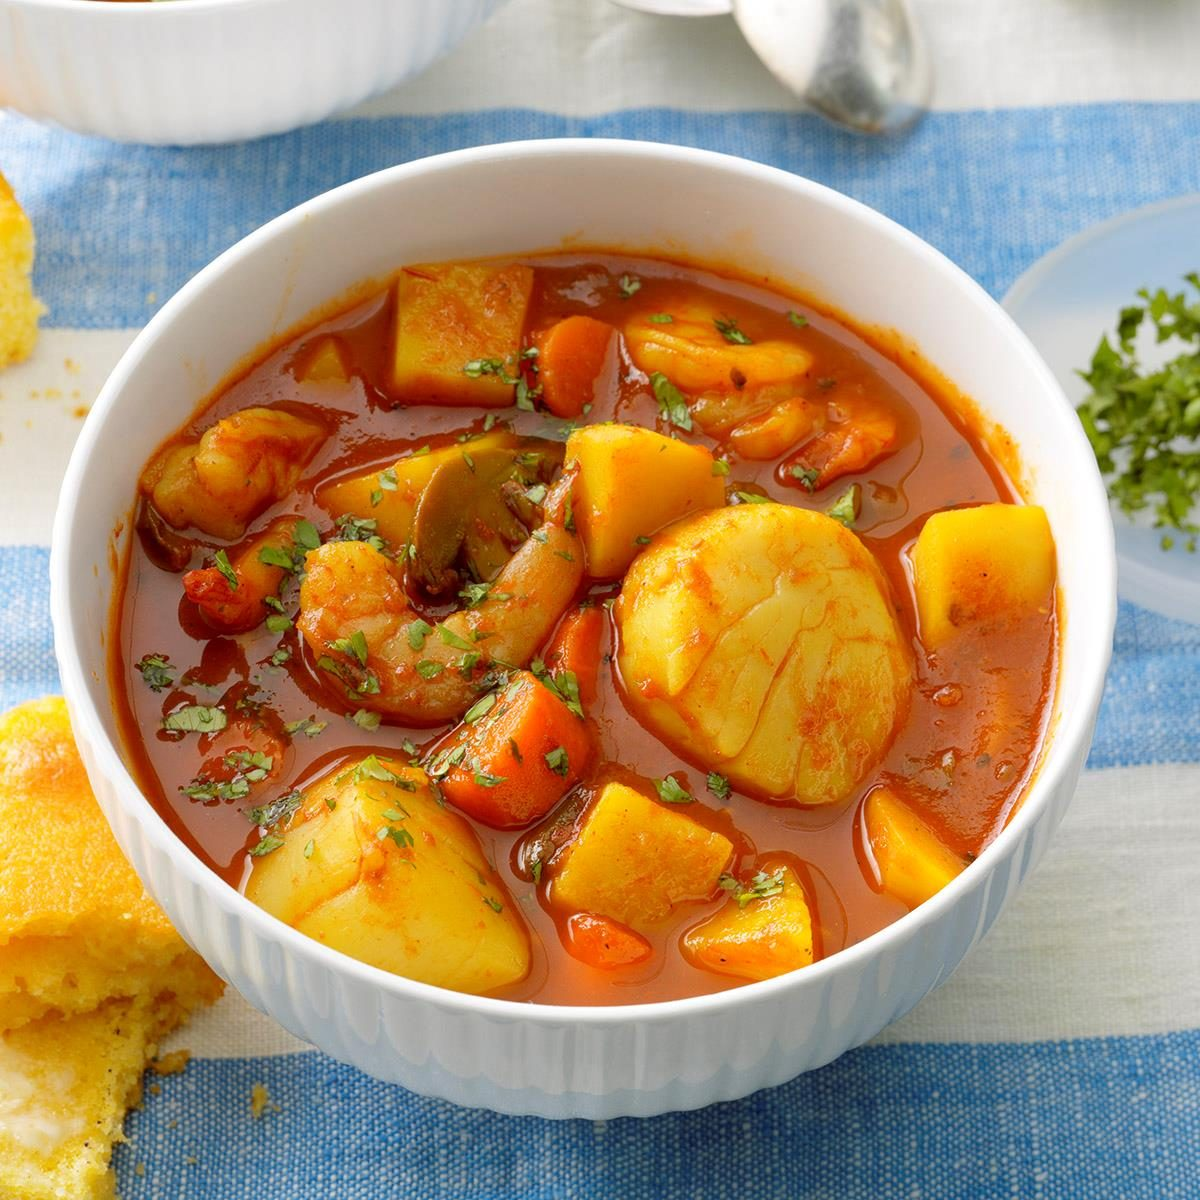 Spicy seafood stew recipe taste of home for Recipe for seafood stew